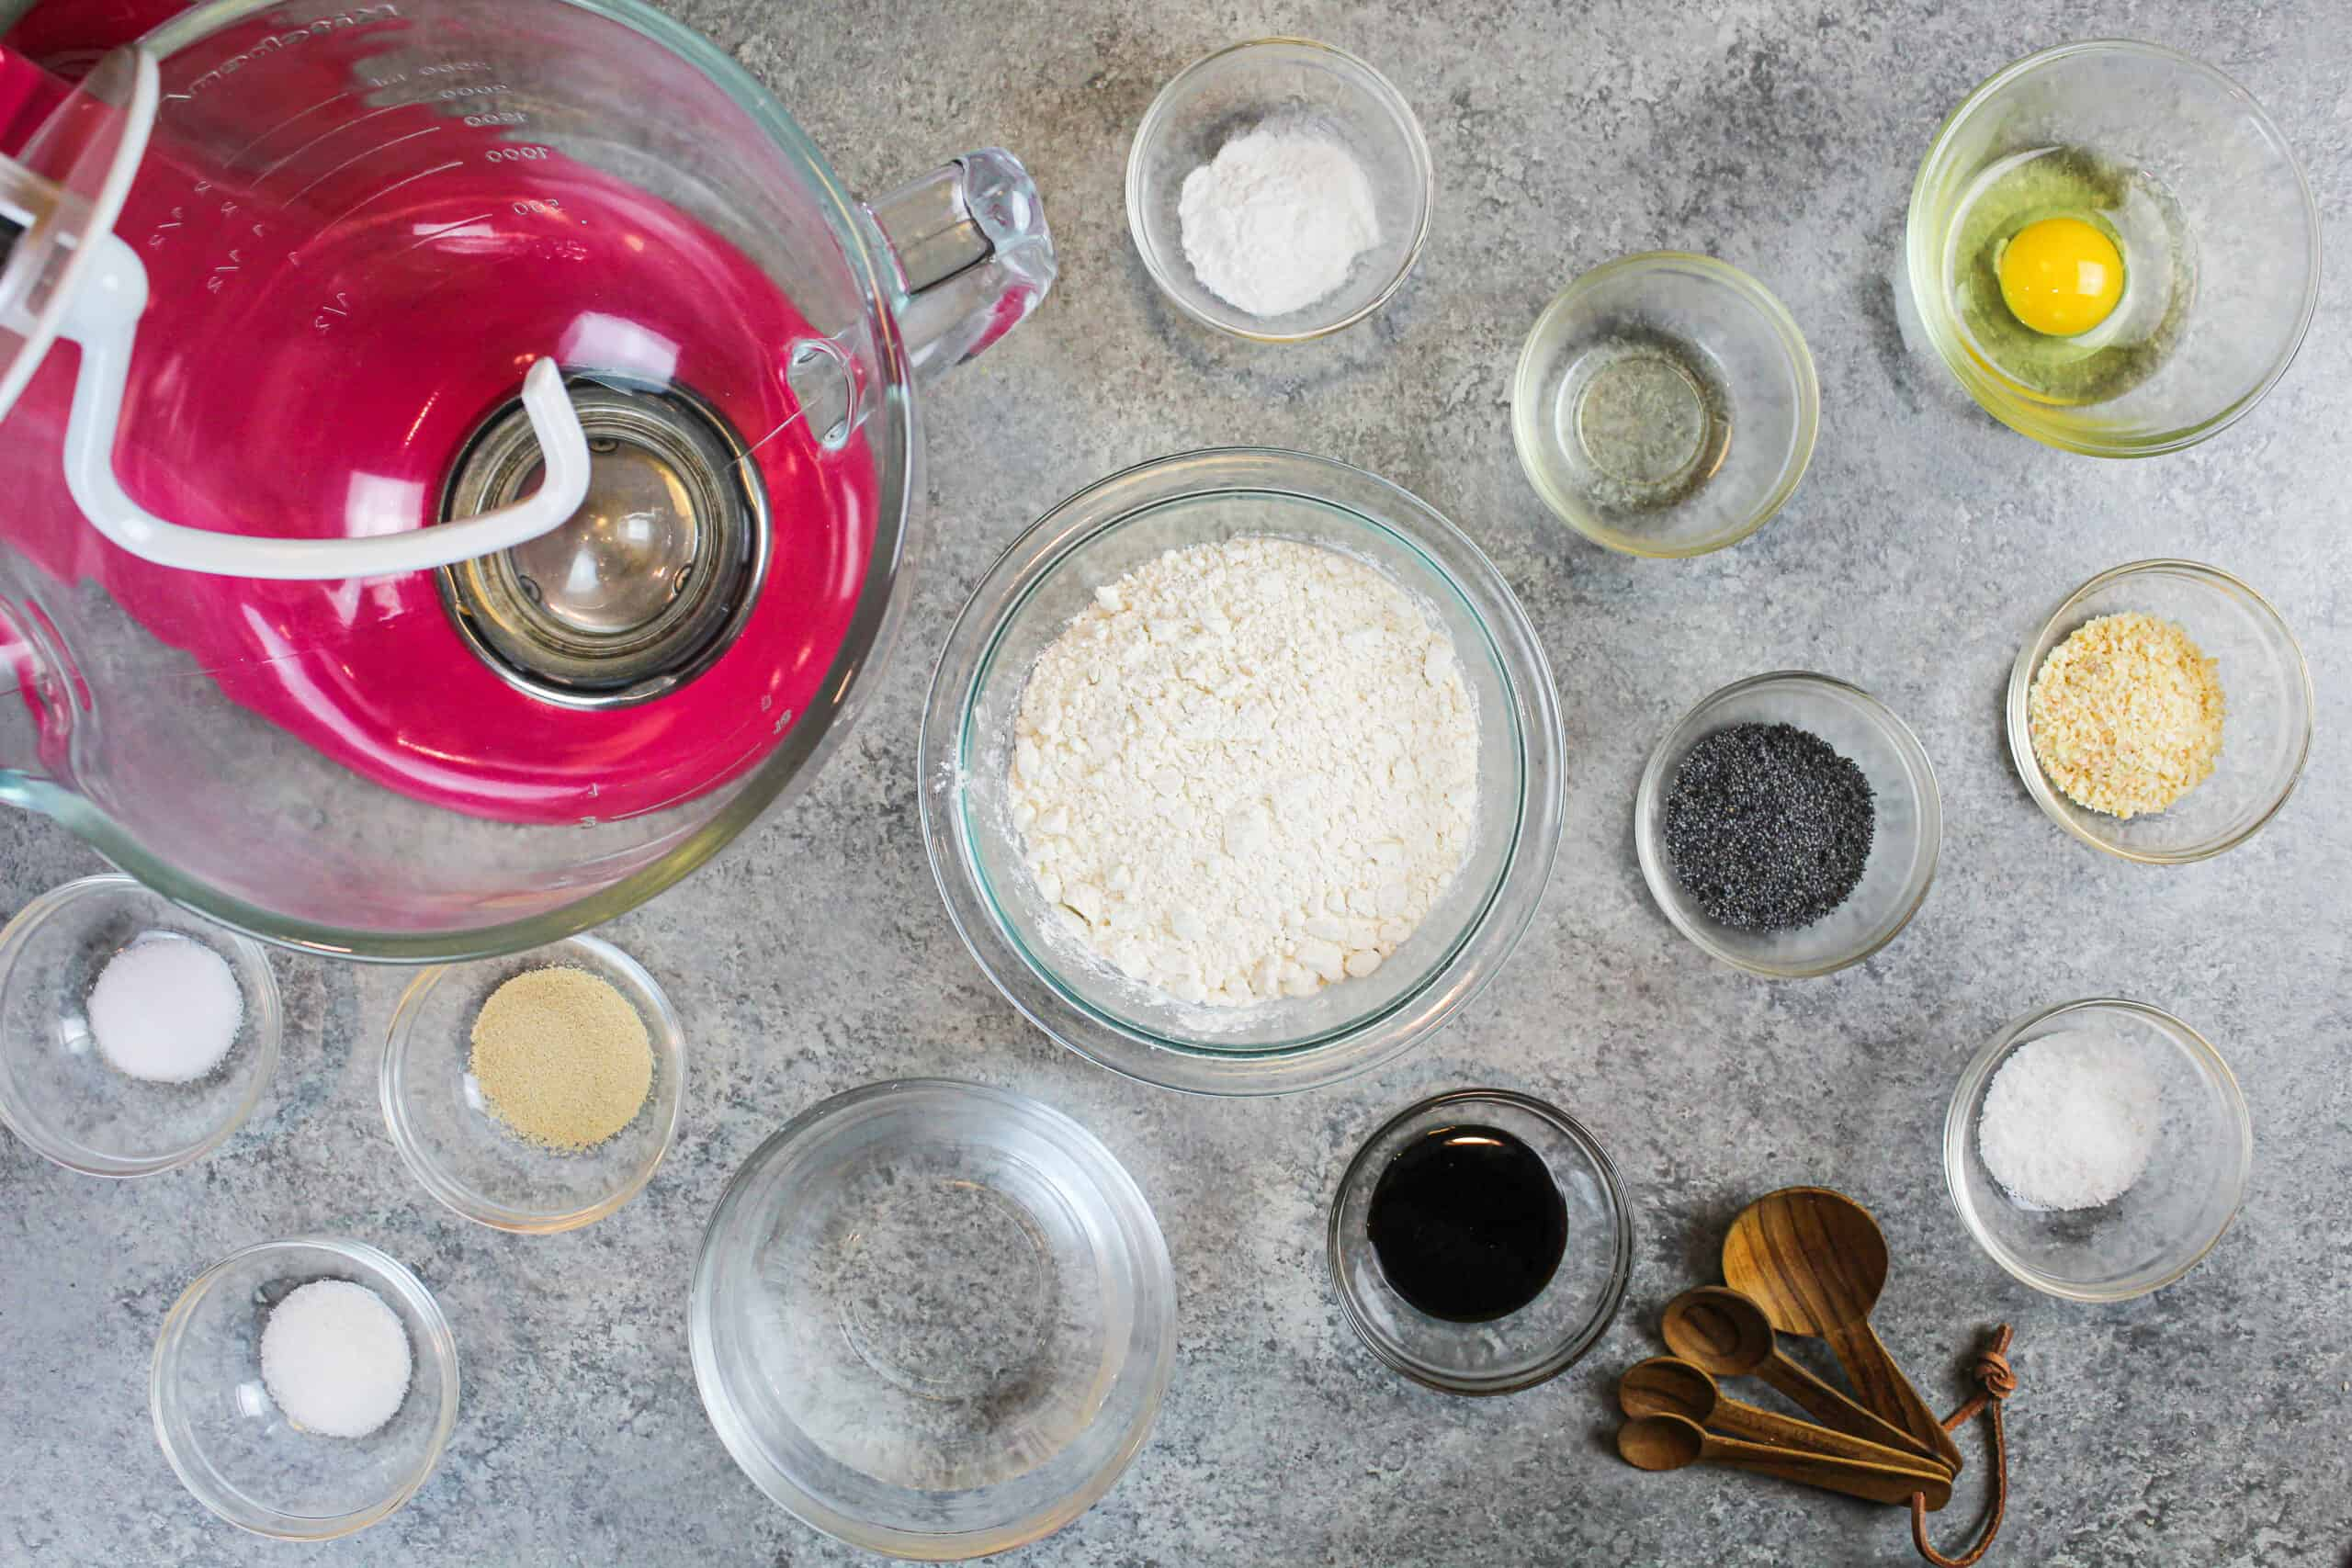 image of batter being made with alternative ingredients from chelsweets baking substitutions guide